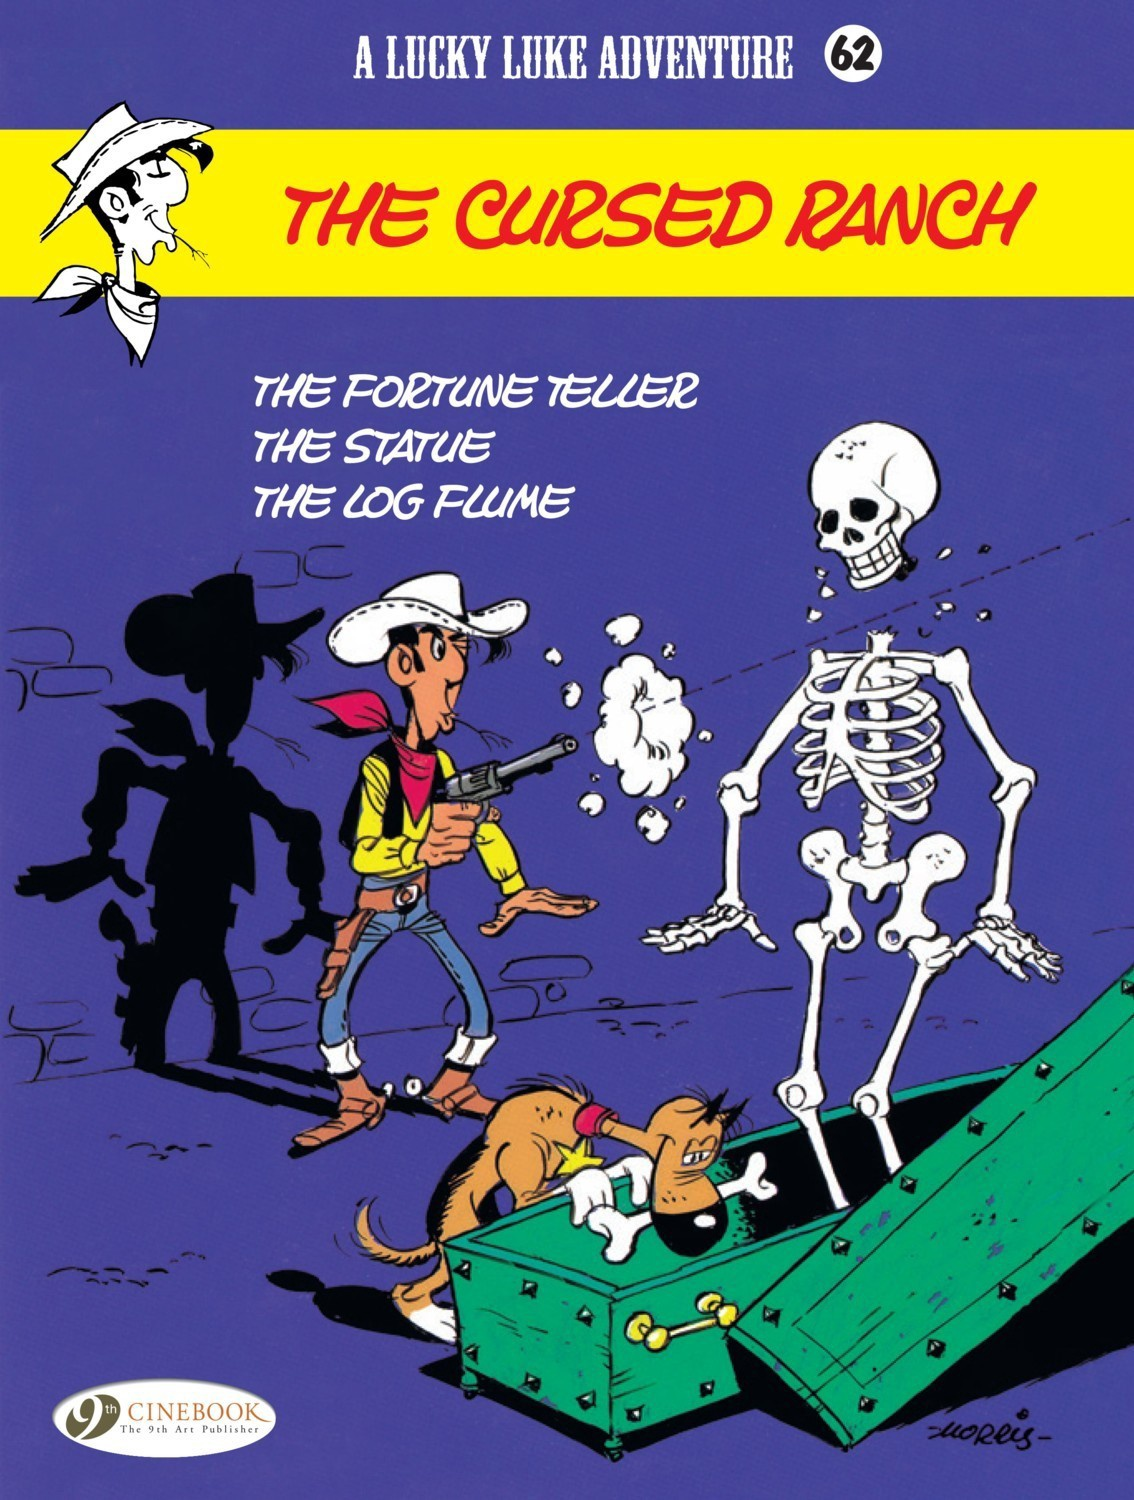 Lucky Luke #62 - The Cursed Ranch